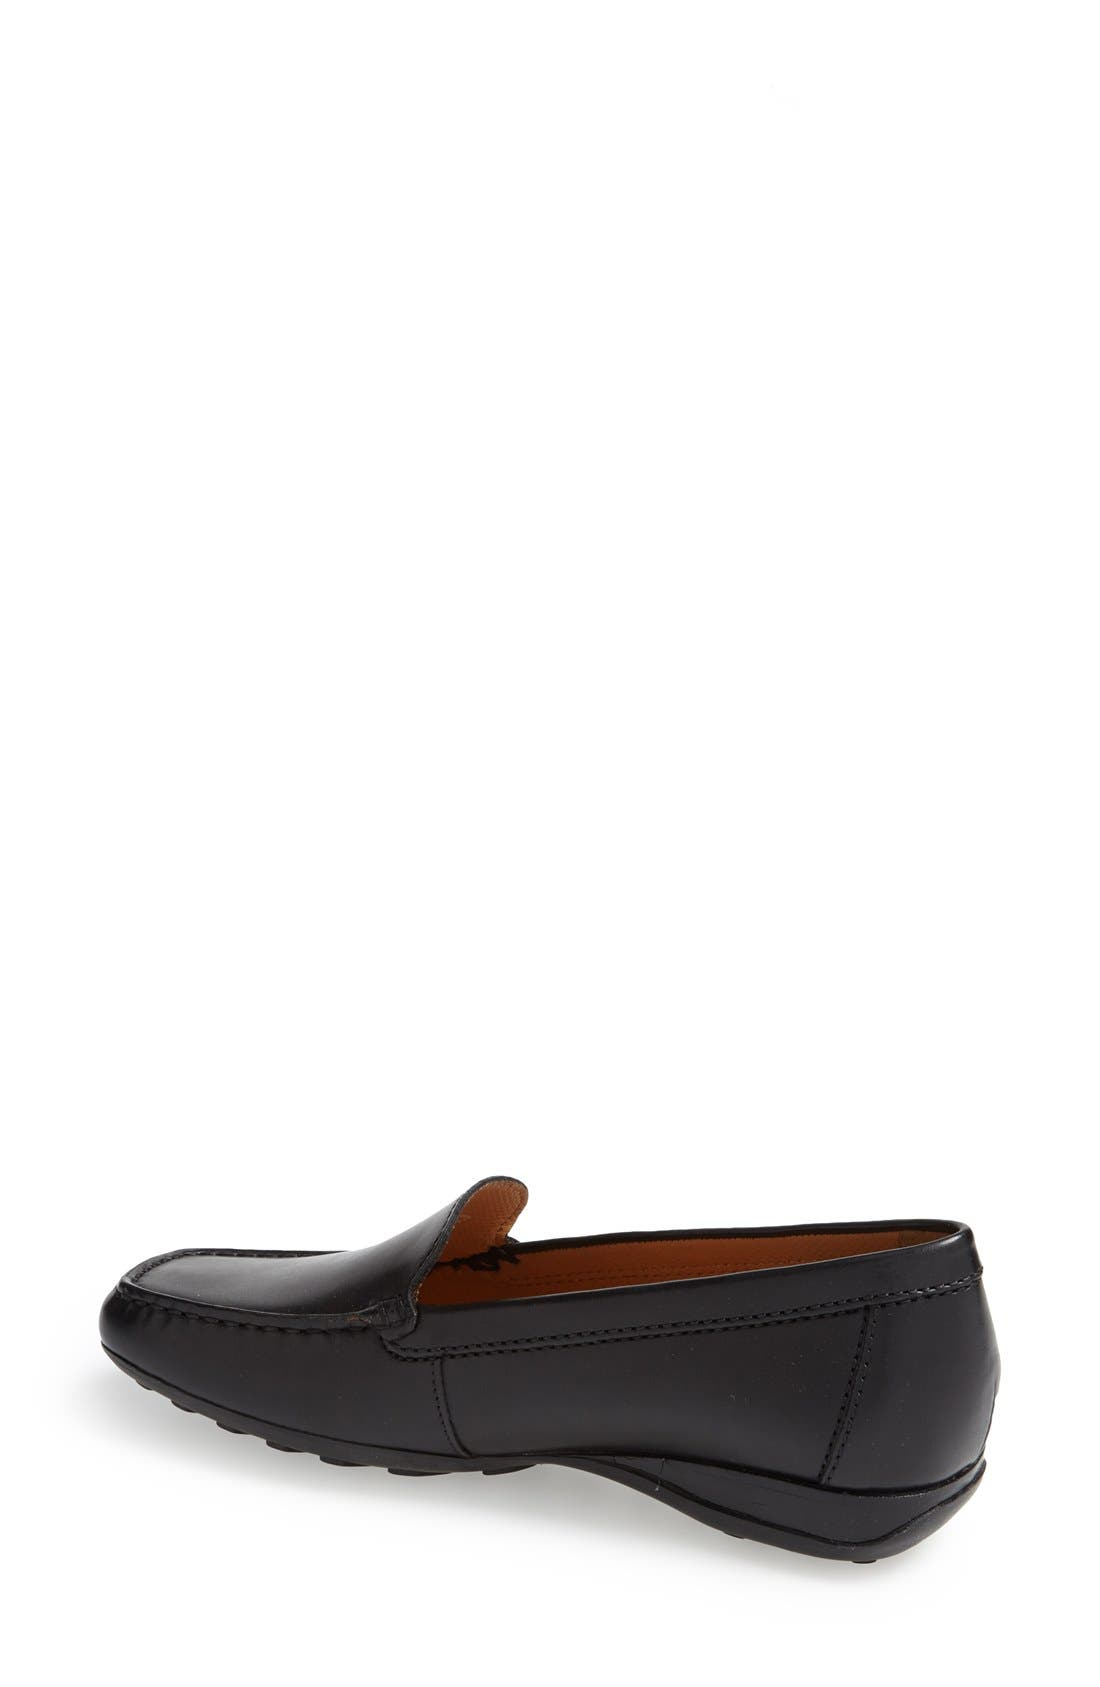 Alternate Image 2  - Geox 'Euro 18' Loafer (Women)